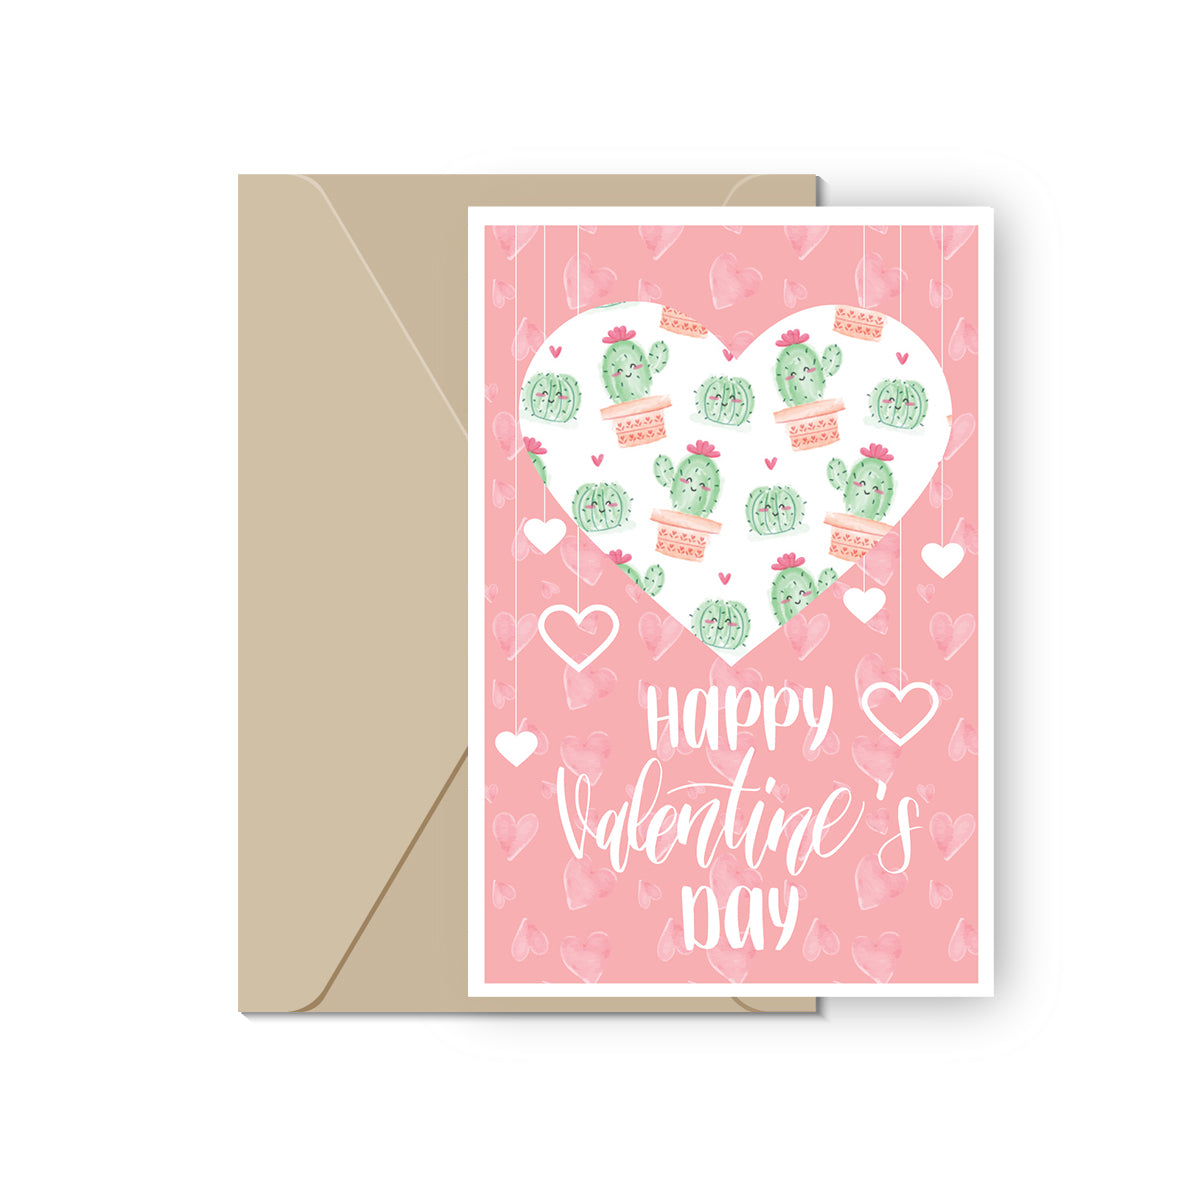 Cactus Valentine's Day Cards for sale, Succulent Happy Valentine Card for sale, Succulents Card, Succulents Gift Ideas, Heart Valentine's Day Card for sale, Succulents Greeting Card, Heart Cactus Valentine Day Card, Succulents Valentine Card for sale